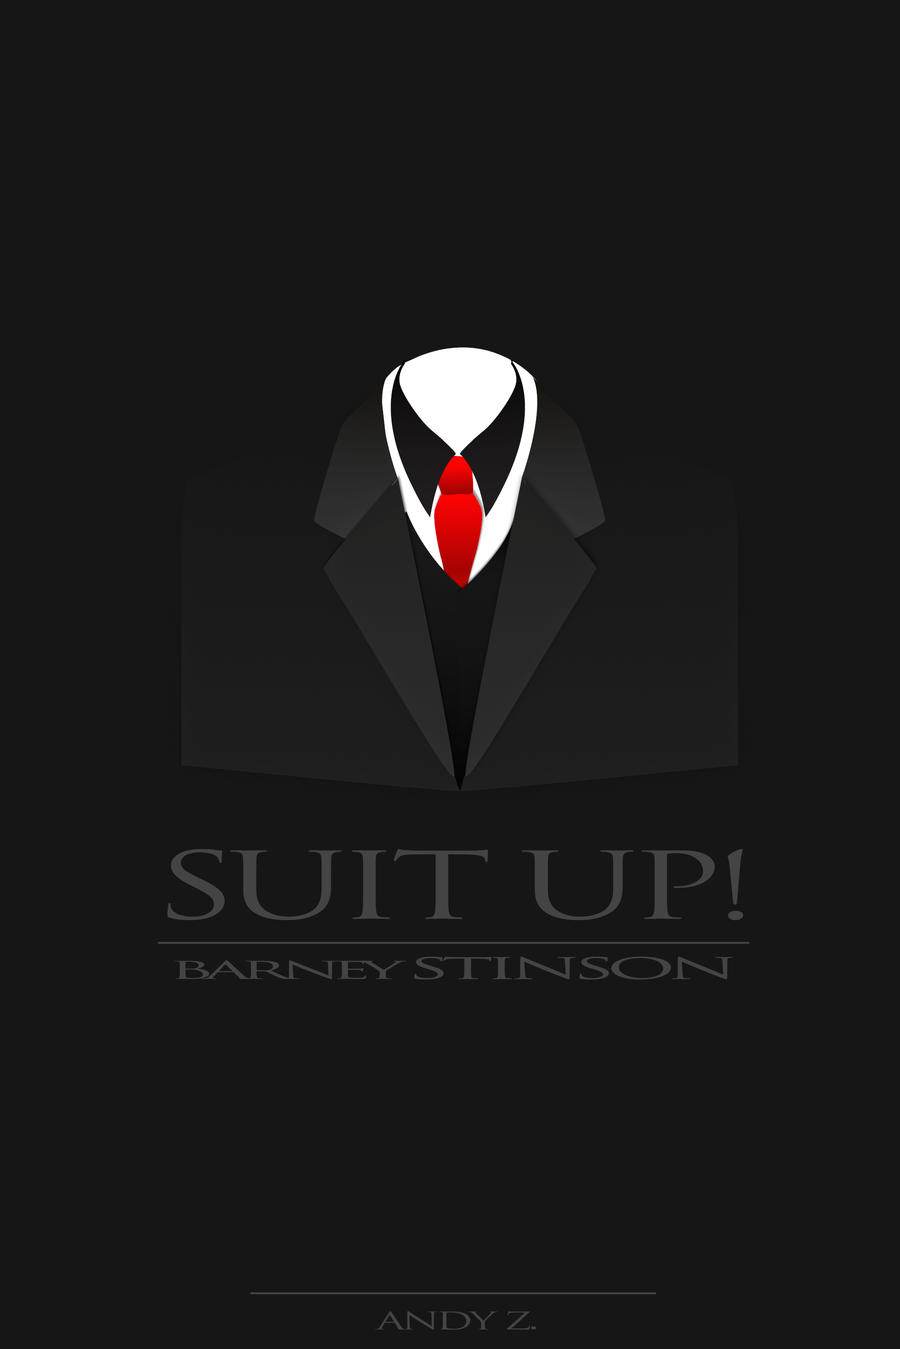 Suit up by xAzD on DeviantArt